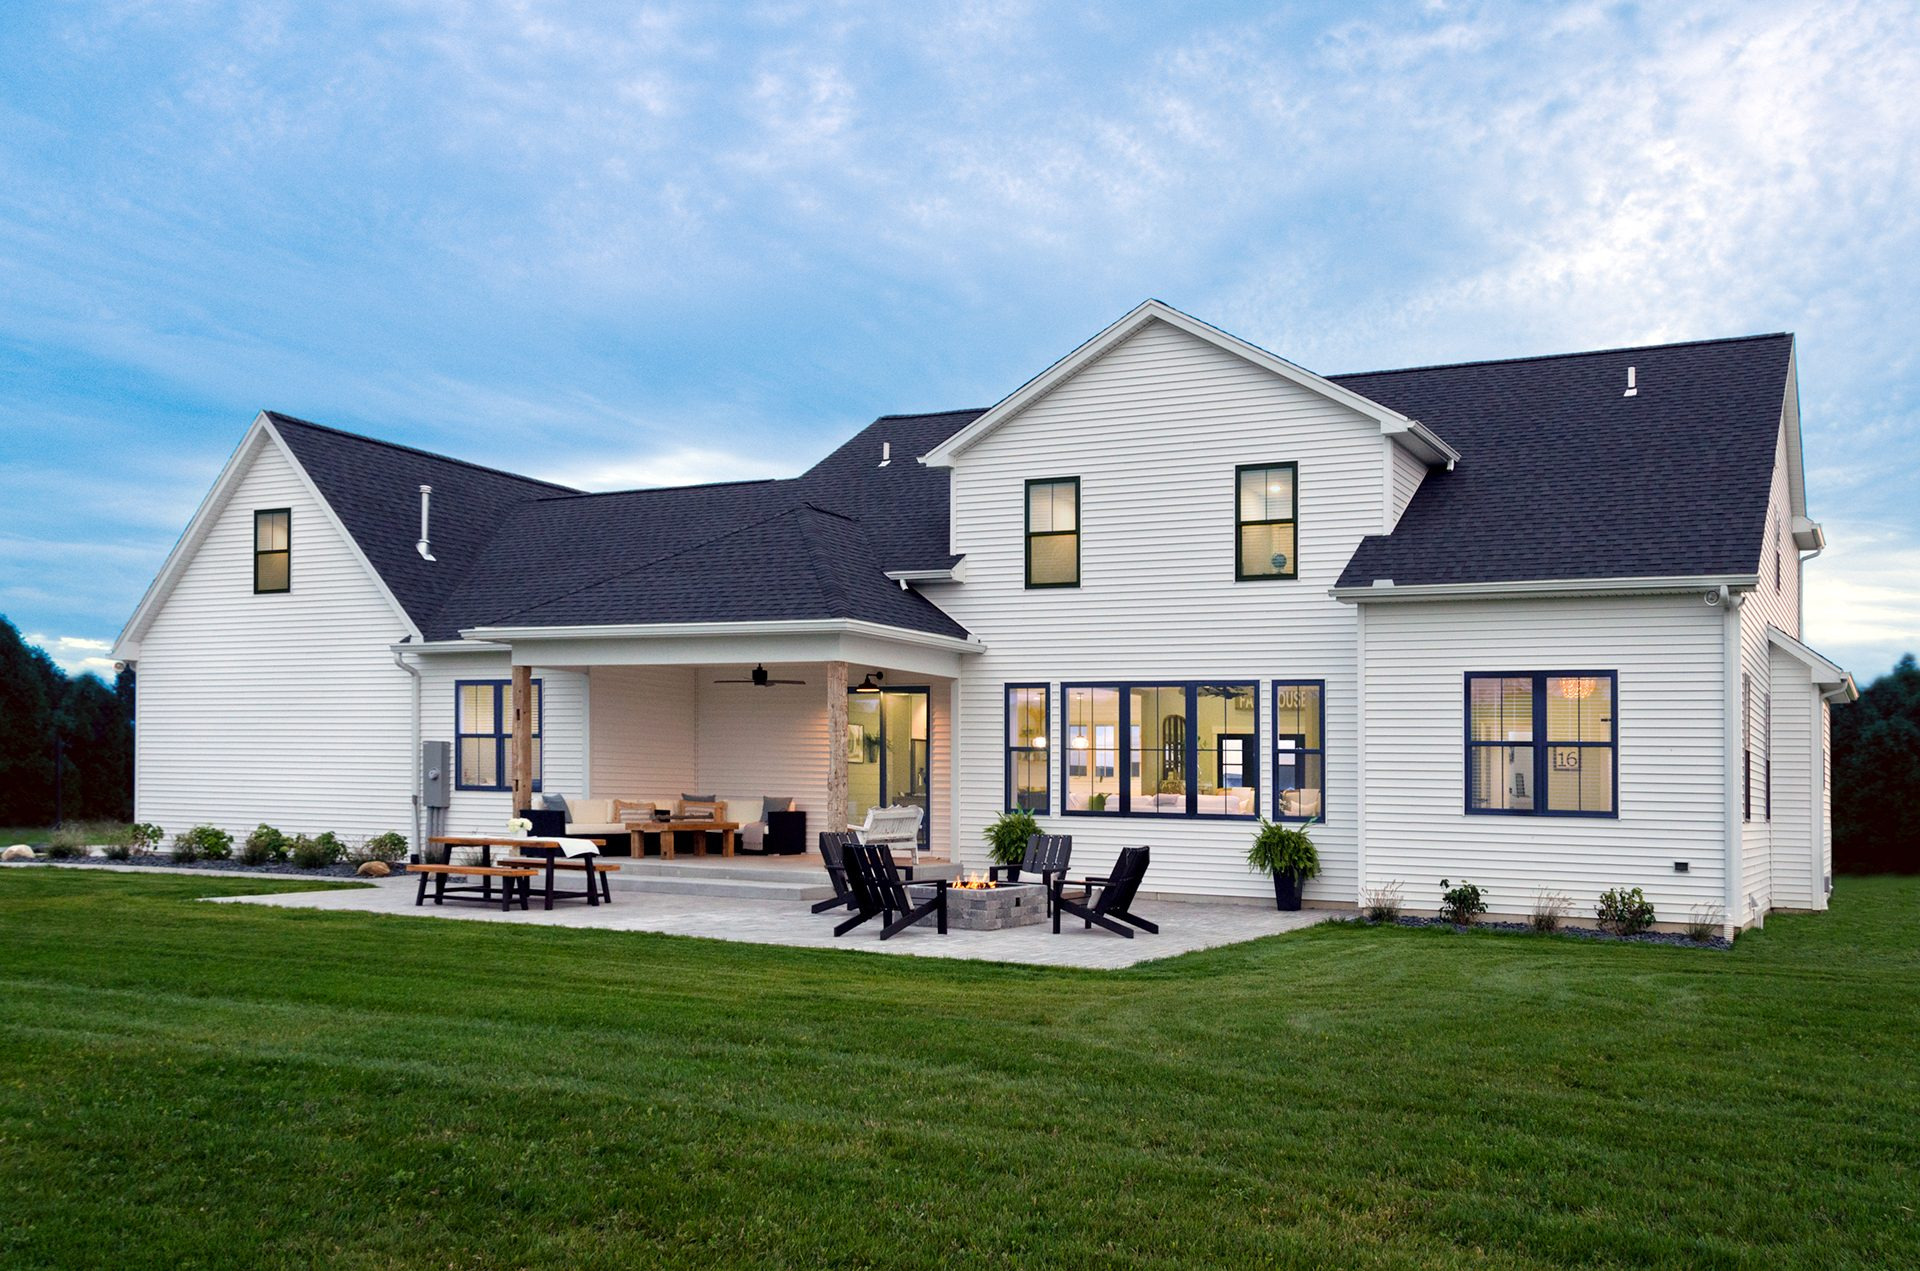 Modern: Farmhouse - Vinyl Siding Institute - VSI on House Siding Ideas  id=24059